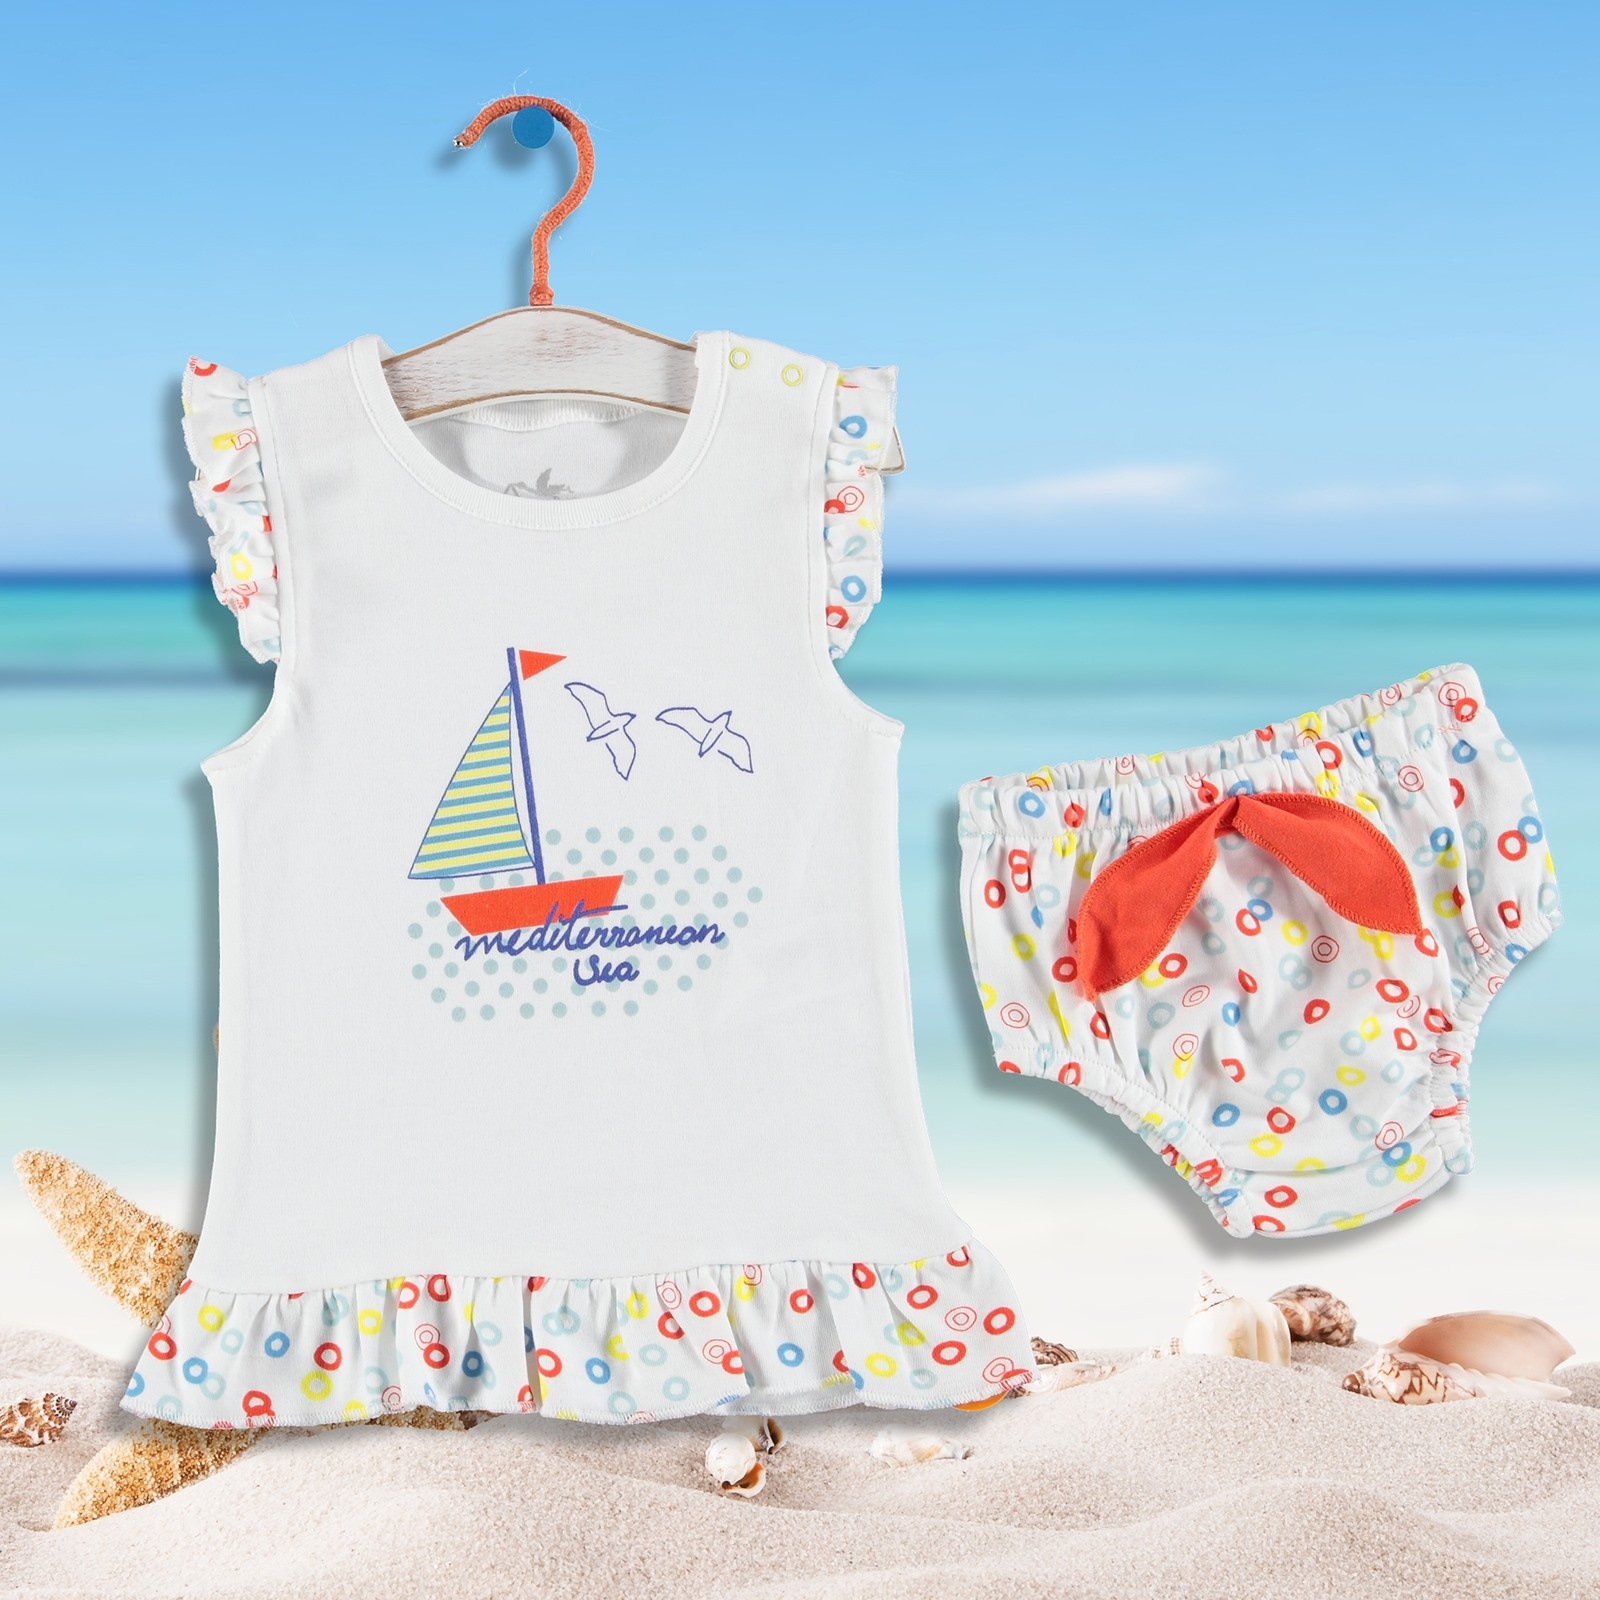 Ebebek Newborn Fashion Club Fun Summer Baby Girl Ruffled Tshirt